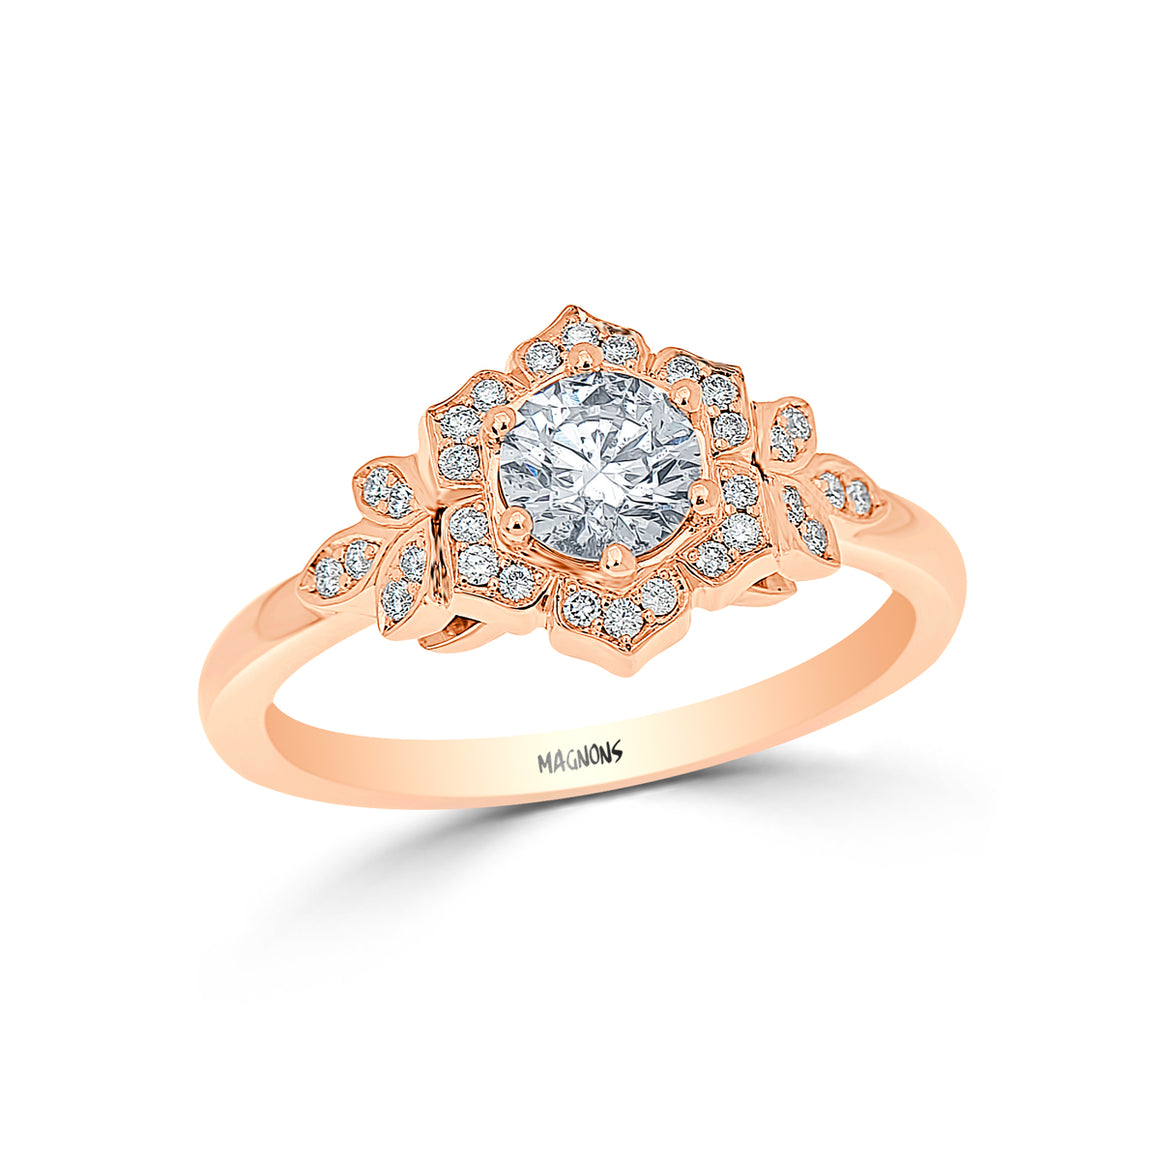 Floral Diamond Engagement Ring 18K yellow gold custom/Conflict free Canadian diamond ring/Yellow gold diamond ring proposal ring promise